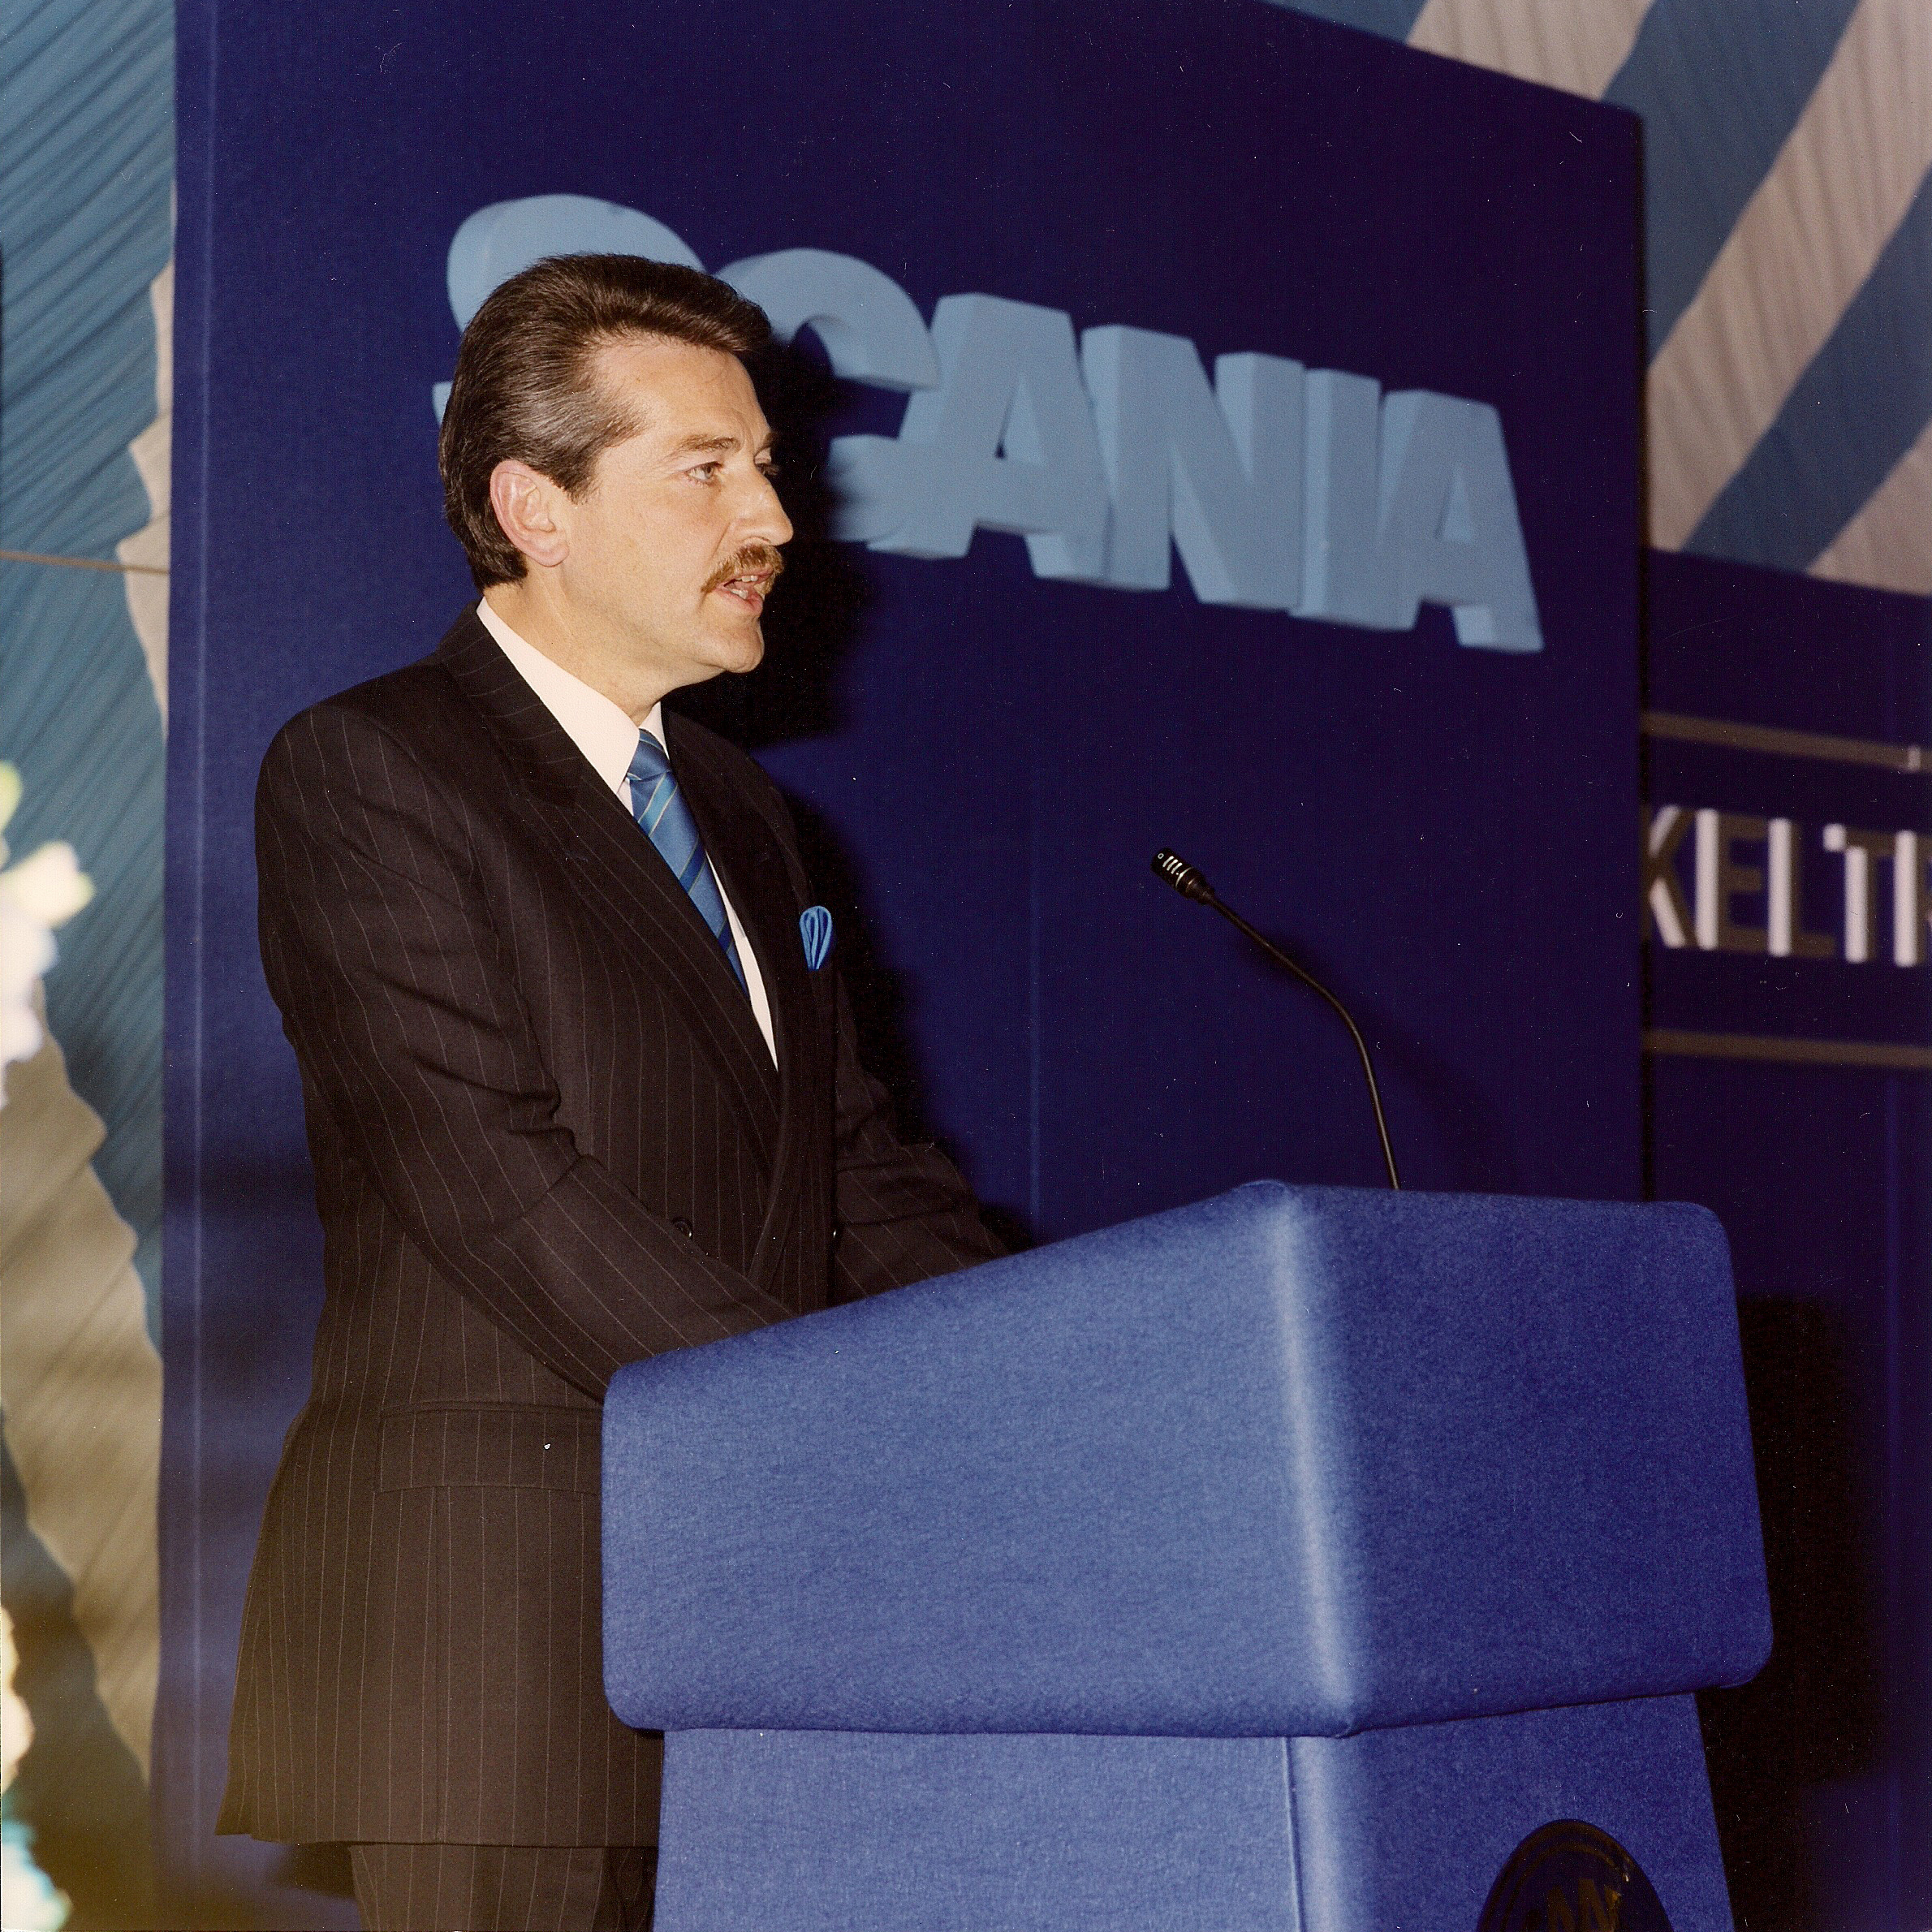 Chris Kelly, founder, addresses Keltruck's tenth anniversary celebration in 1993 at which the Secretary of State for Transport also officially opened the company's West Bromwich depot & head office expansion